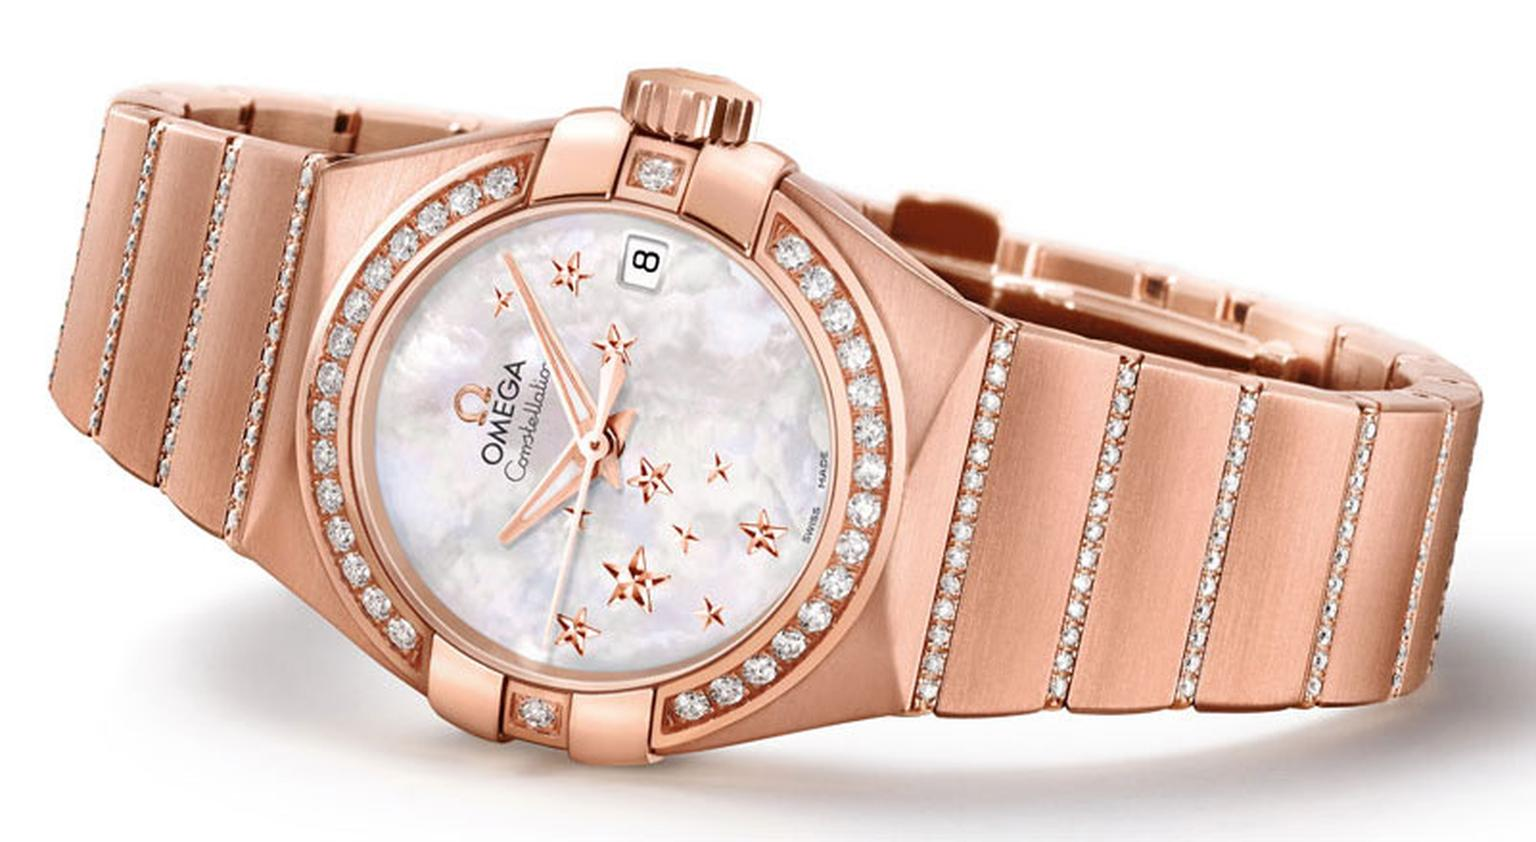 Omega-Constellation-Basel 2012 womens